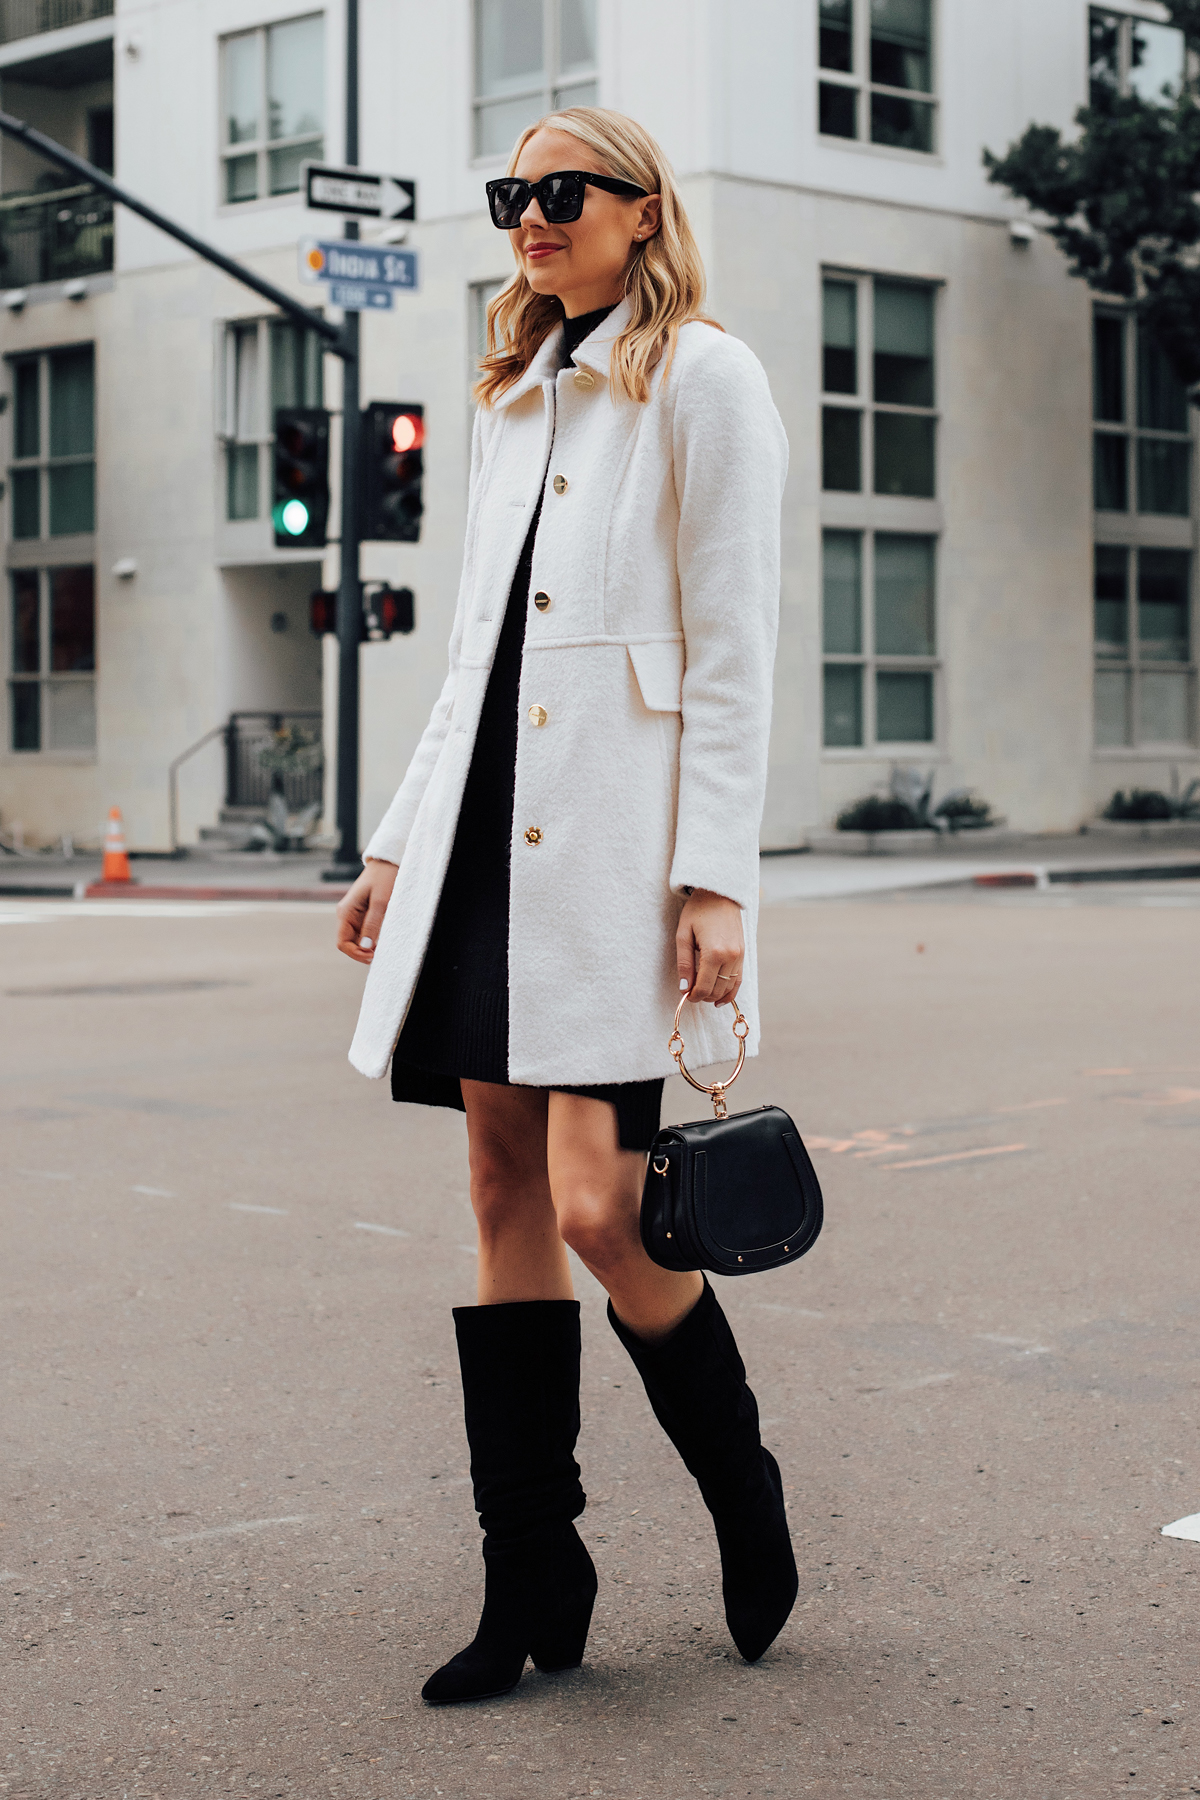 Blonde Woman Wearing Winter White Coat Black Sweater Dress Black Slouchy Boots Fashion Jackson San Diego Fashion Blogger Holiday Style